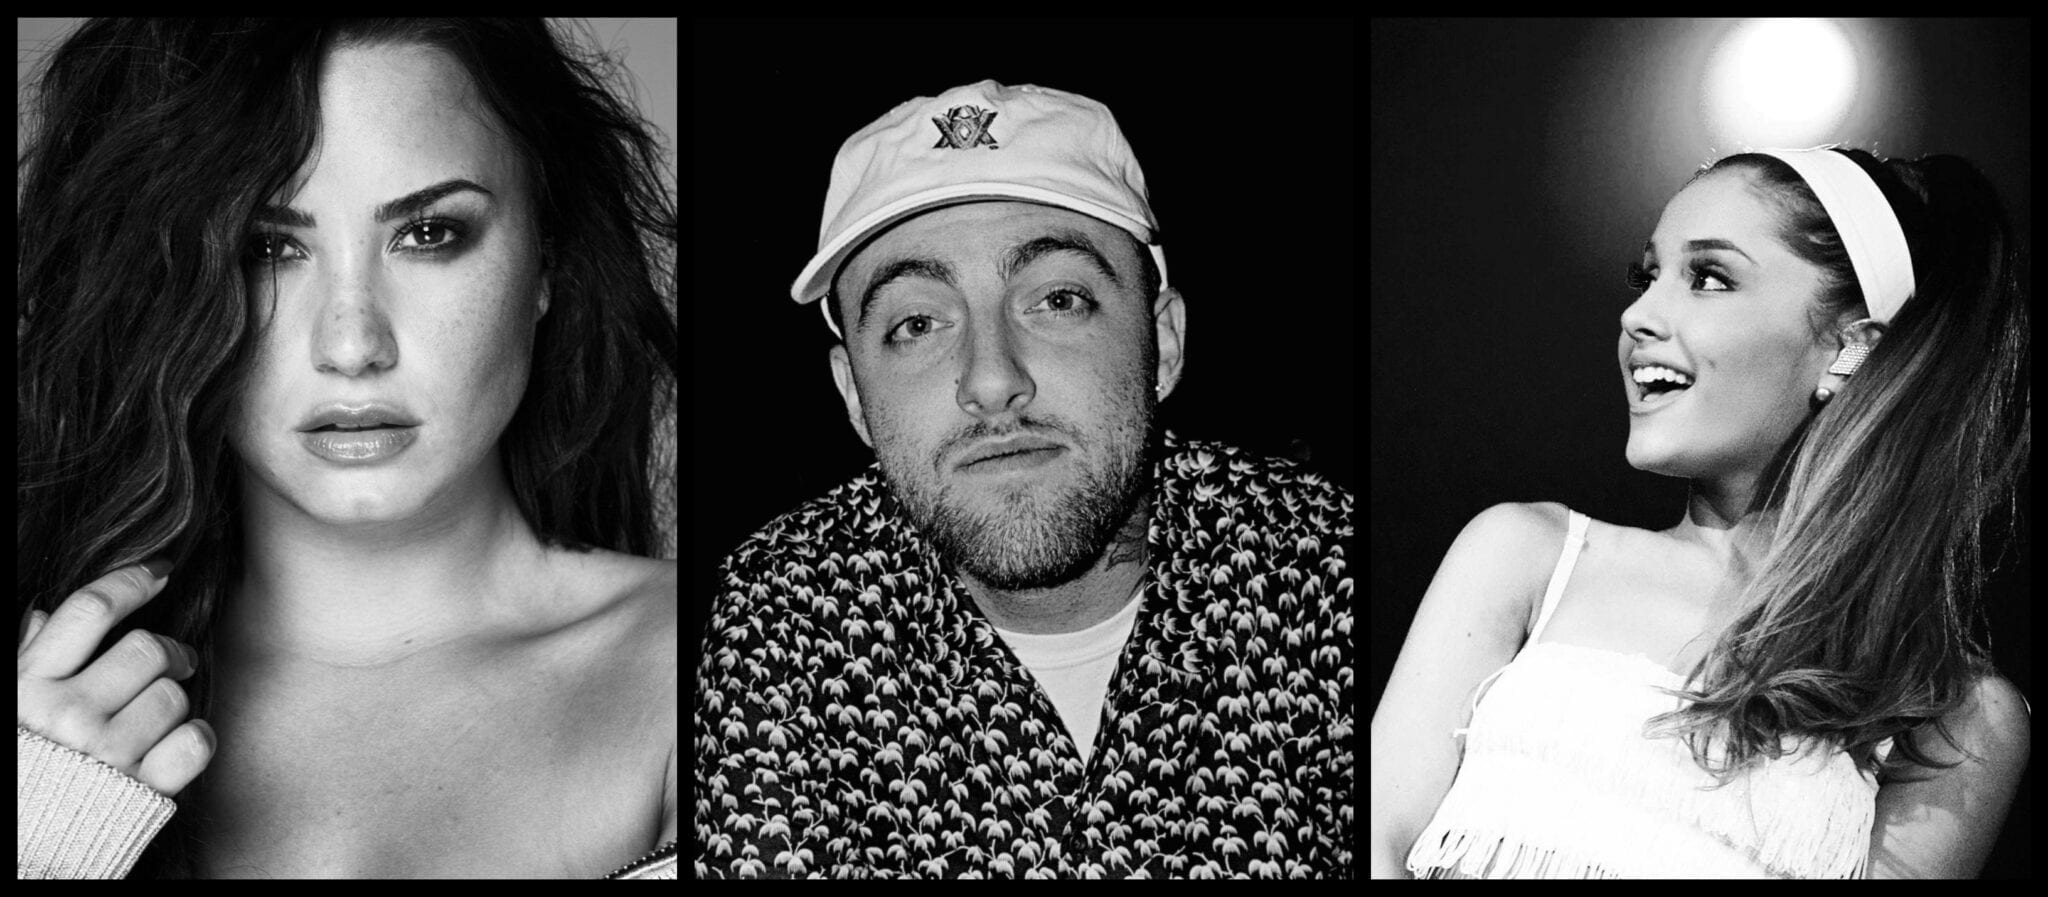 The Demonising Reality of Women and Addiction: Demi Lovato, Ariana Grande, and Mac Miller.